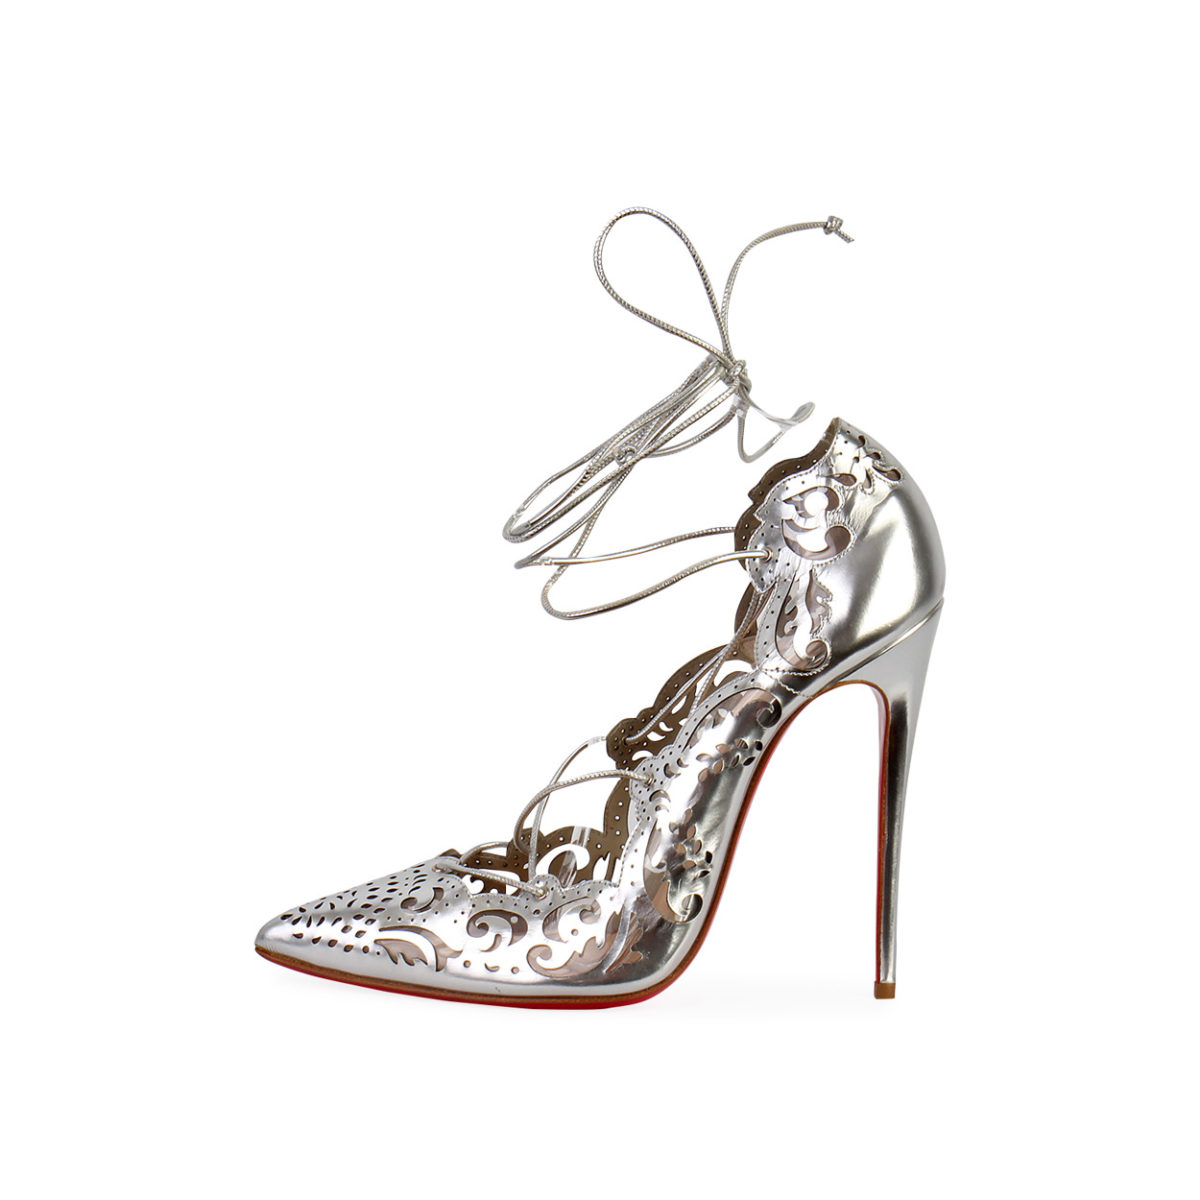 Christian Louboutin Leather Laser Cut Impera 120 Pumps Silver S 38 5 New